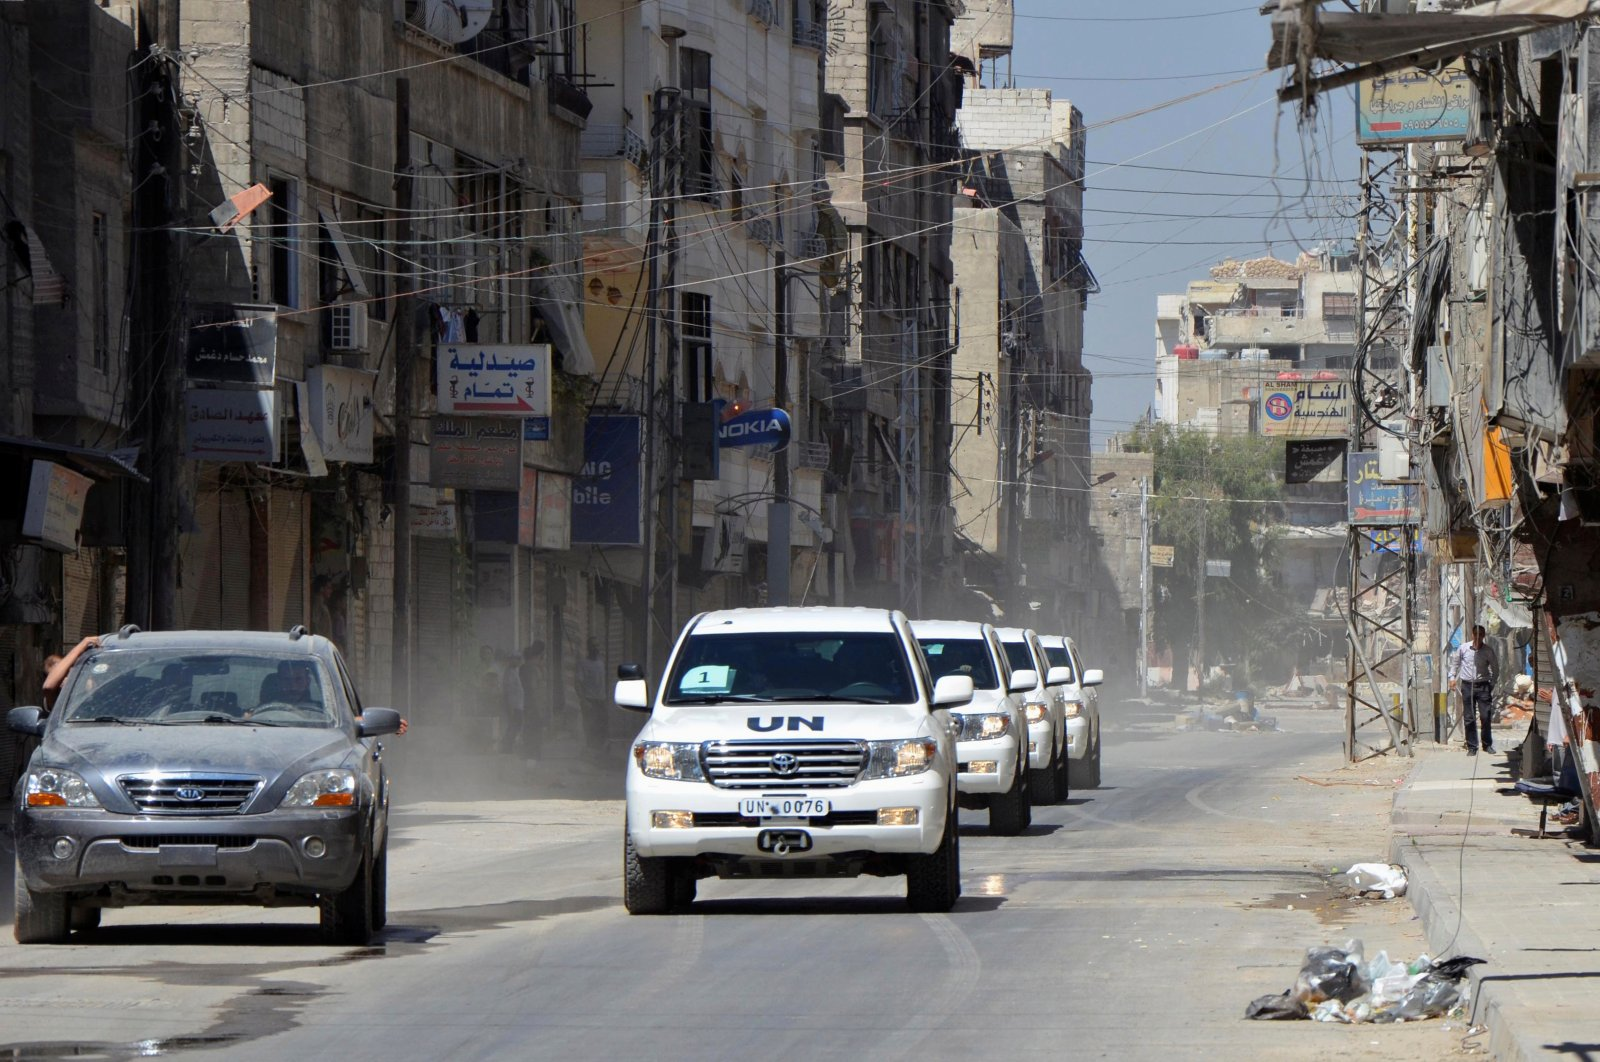 A convoy of United Nations vehicles carrying a team of U.N. chemical weapons experts and escorted by Free Syrian Army fighters drive through one of the sites of an alleged chemical weapons attack in eastern Ghouta in Damascus suburbs, Syria, Aug. 28, 2013. (Reuters Photo)